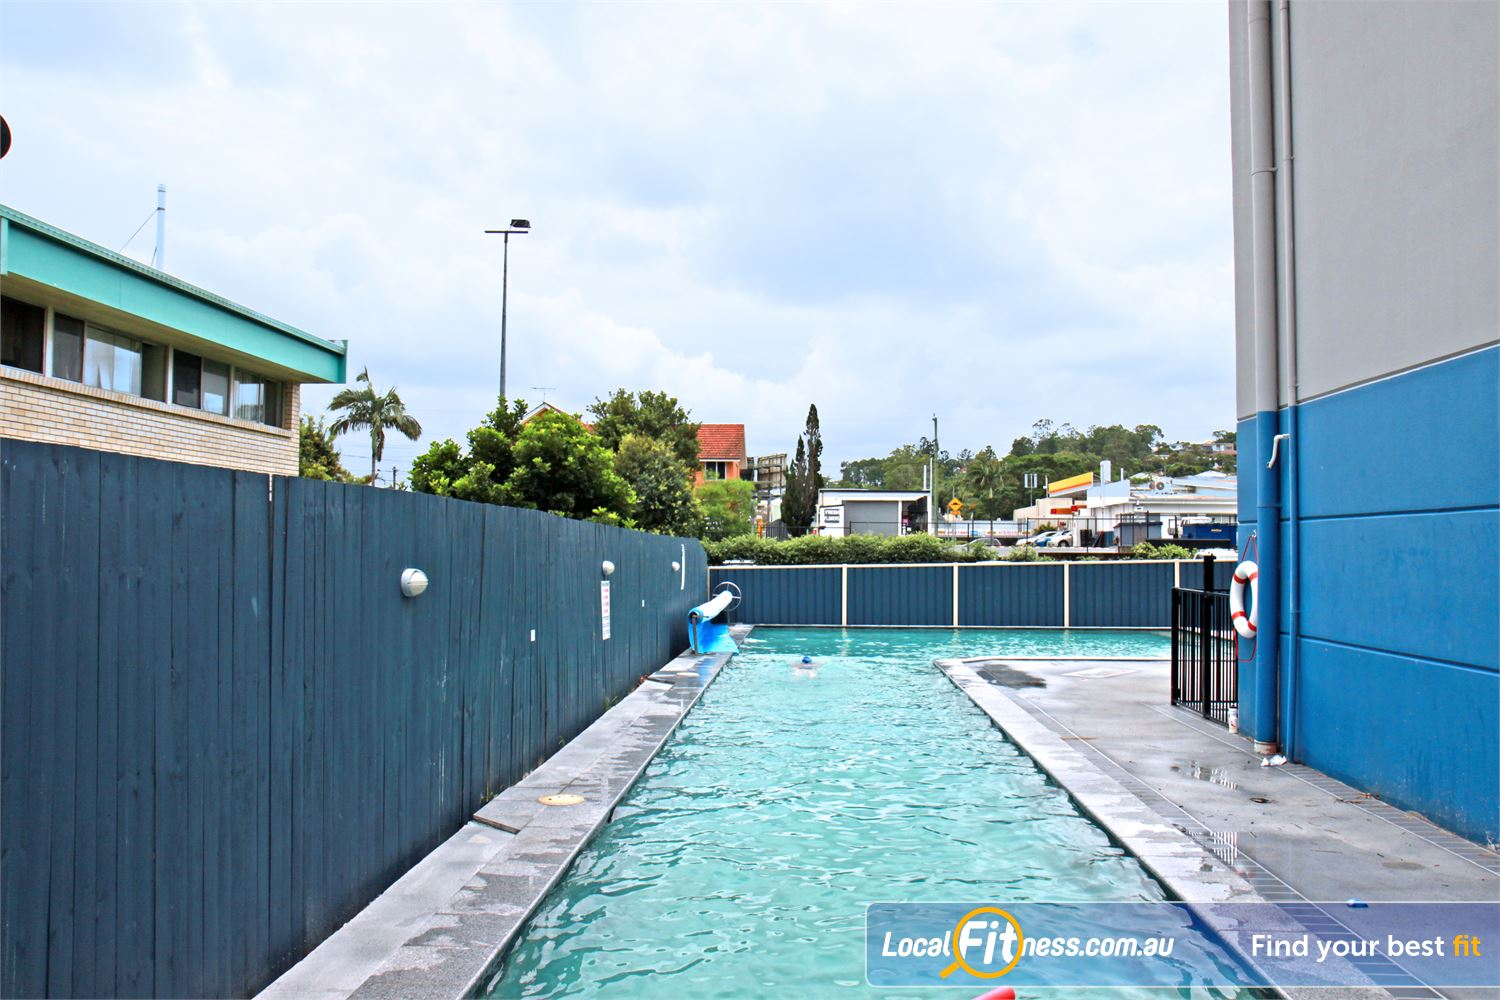 Goodlife Health Clubs Near Mount Gravatt Enjoy lap swimming in our Holland Park swimming pool.